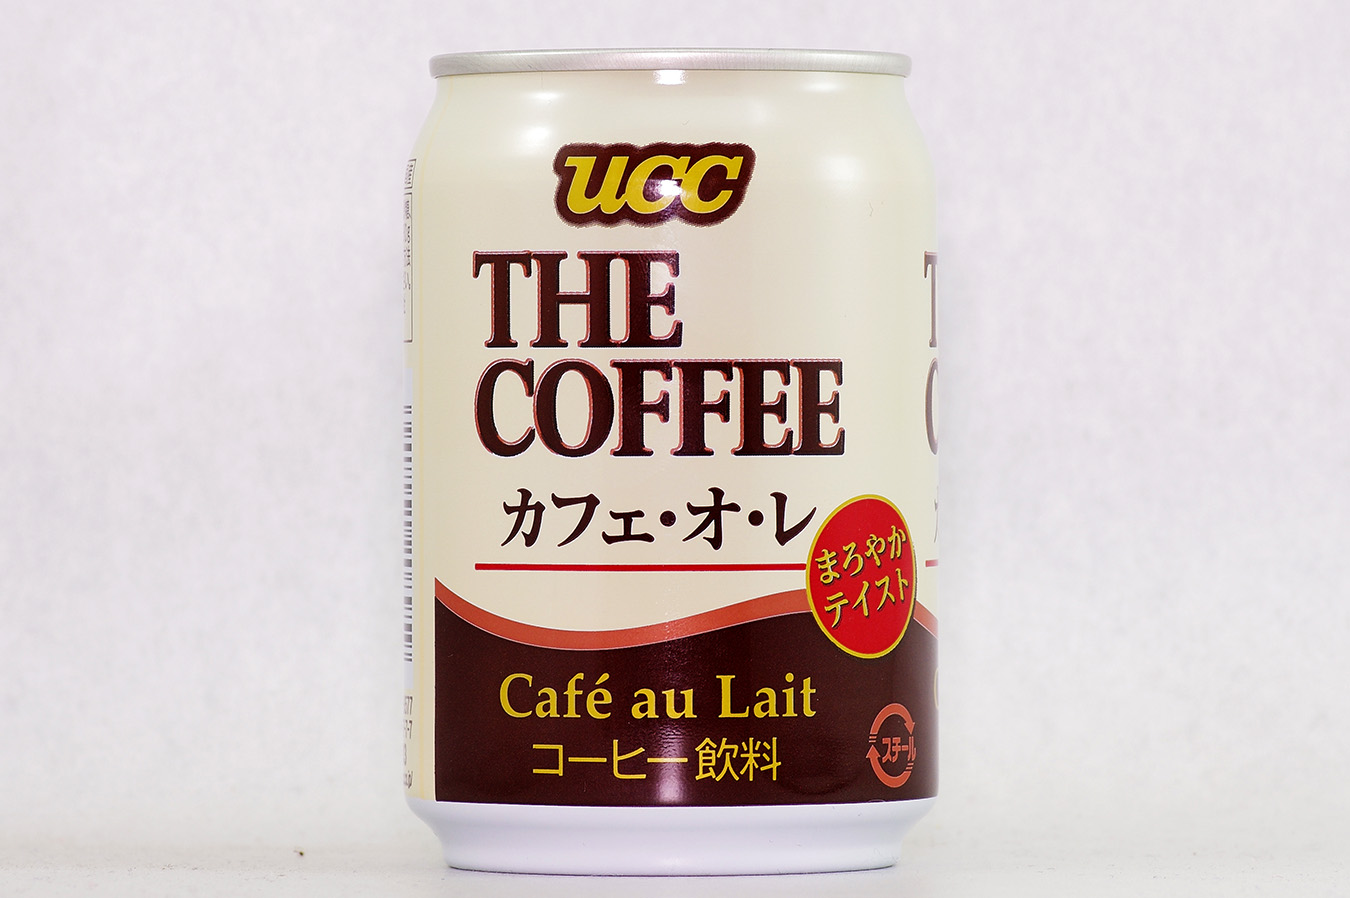 UCC THE COFFEE カフェ・オ・レ 2016年6月